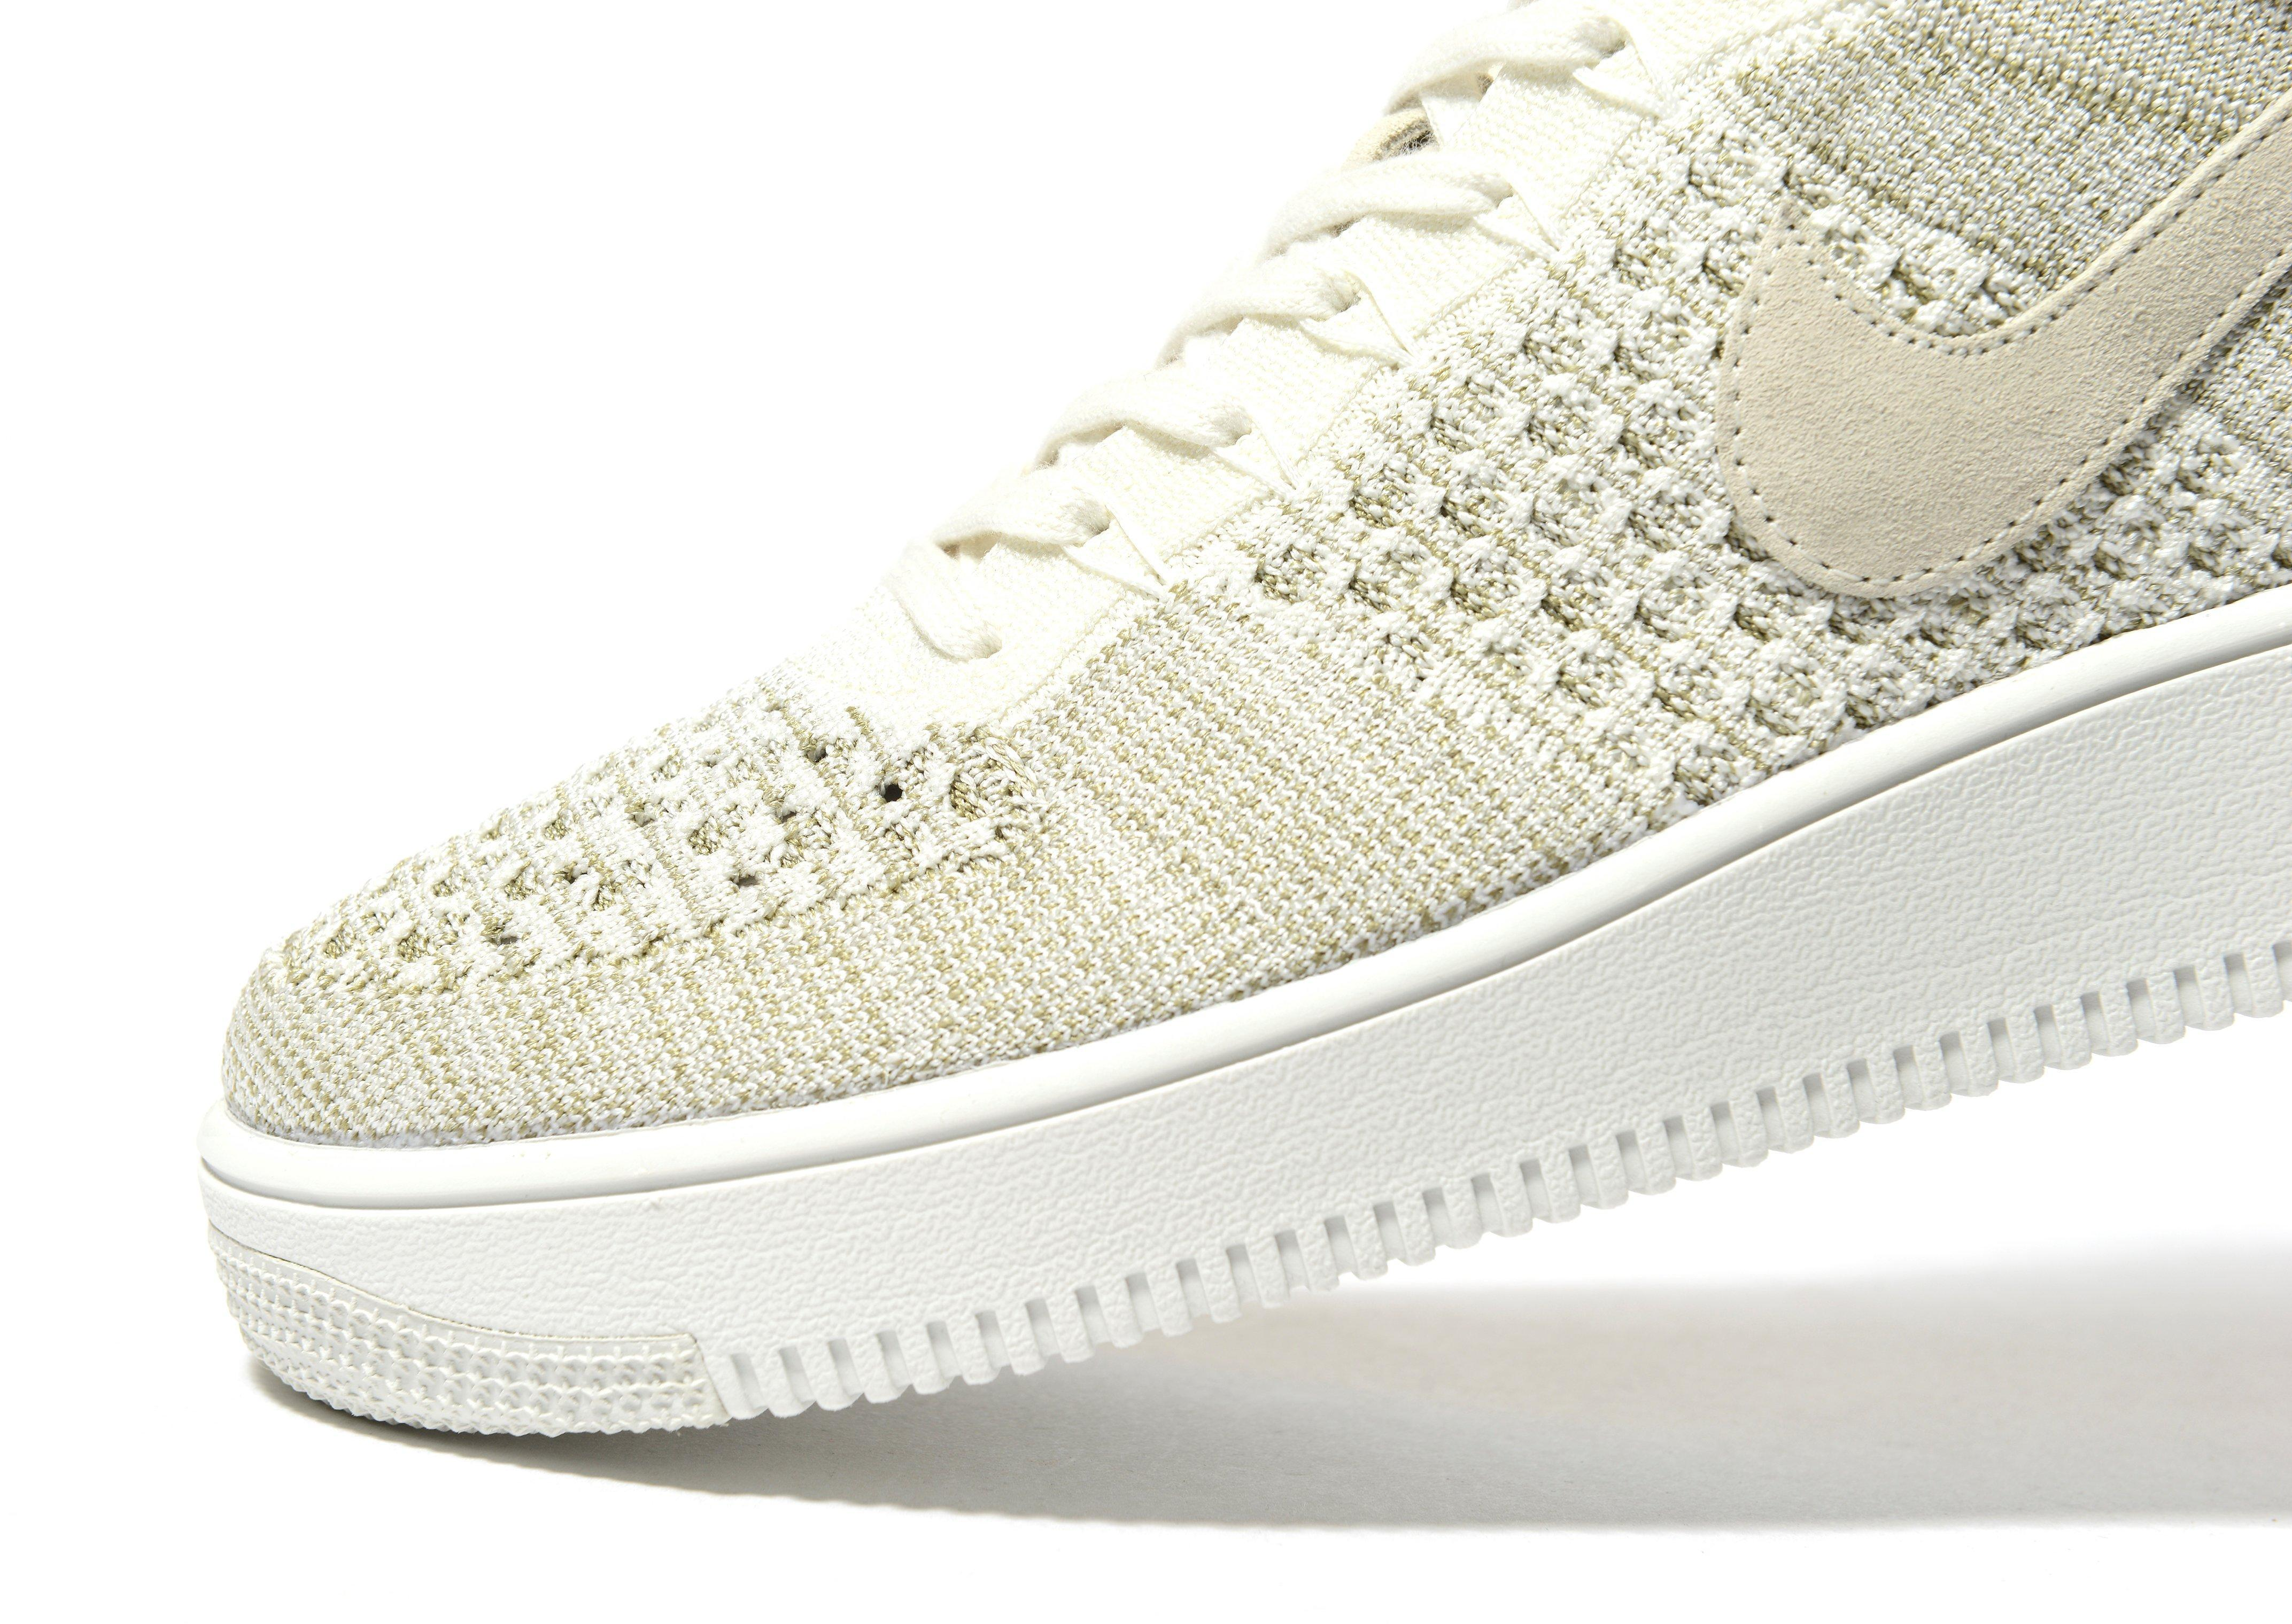 Nike Synthetic Air Force 1 Mid Ultra Flyknit for Men